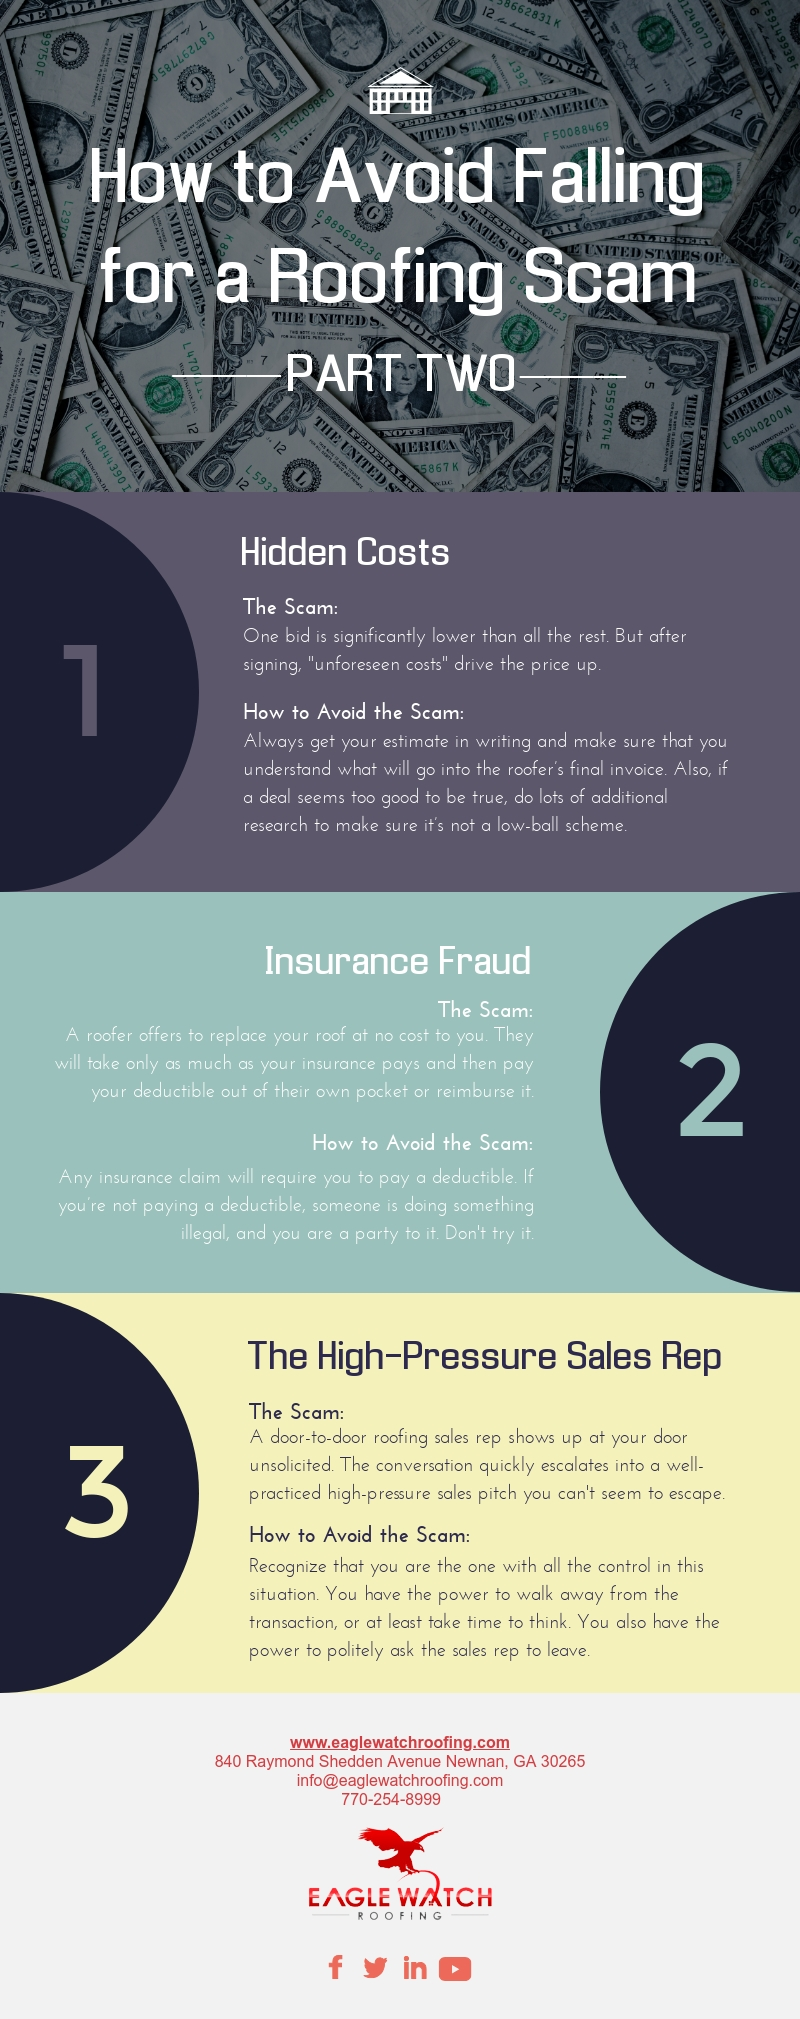 How to Avoid Falling for a Roofing Scam - Part Two [infographic]